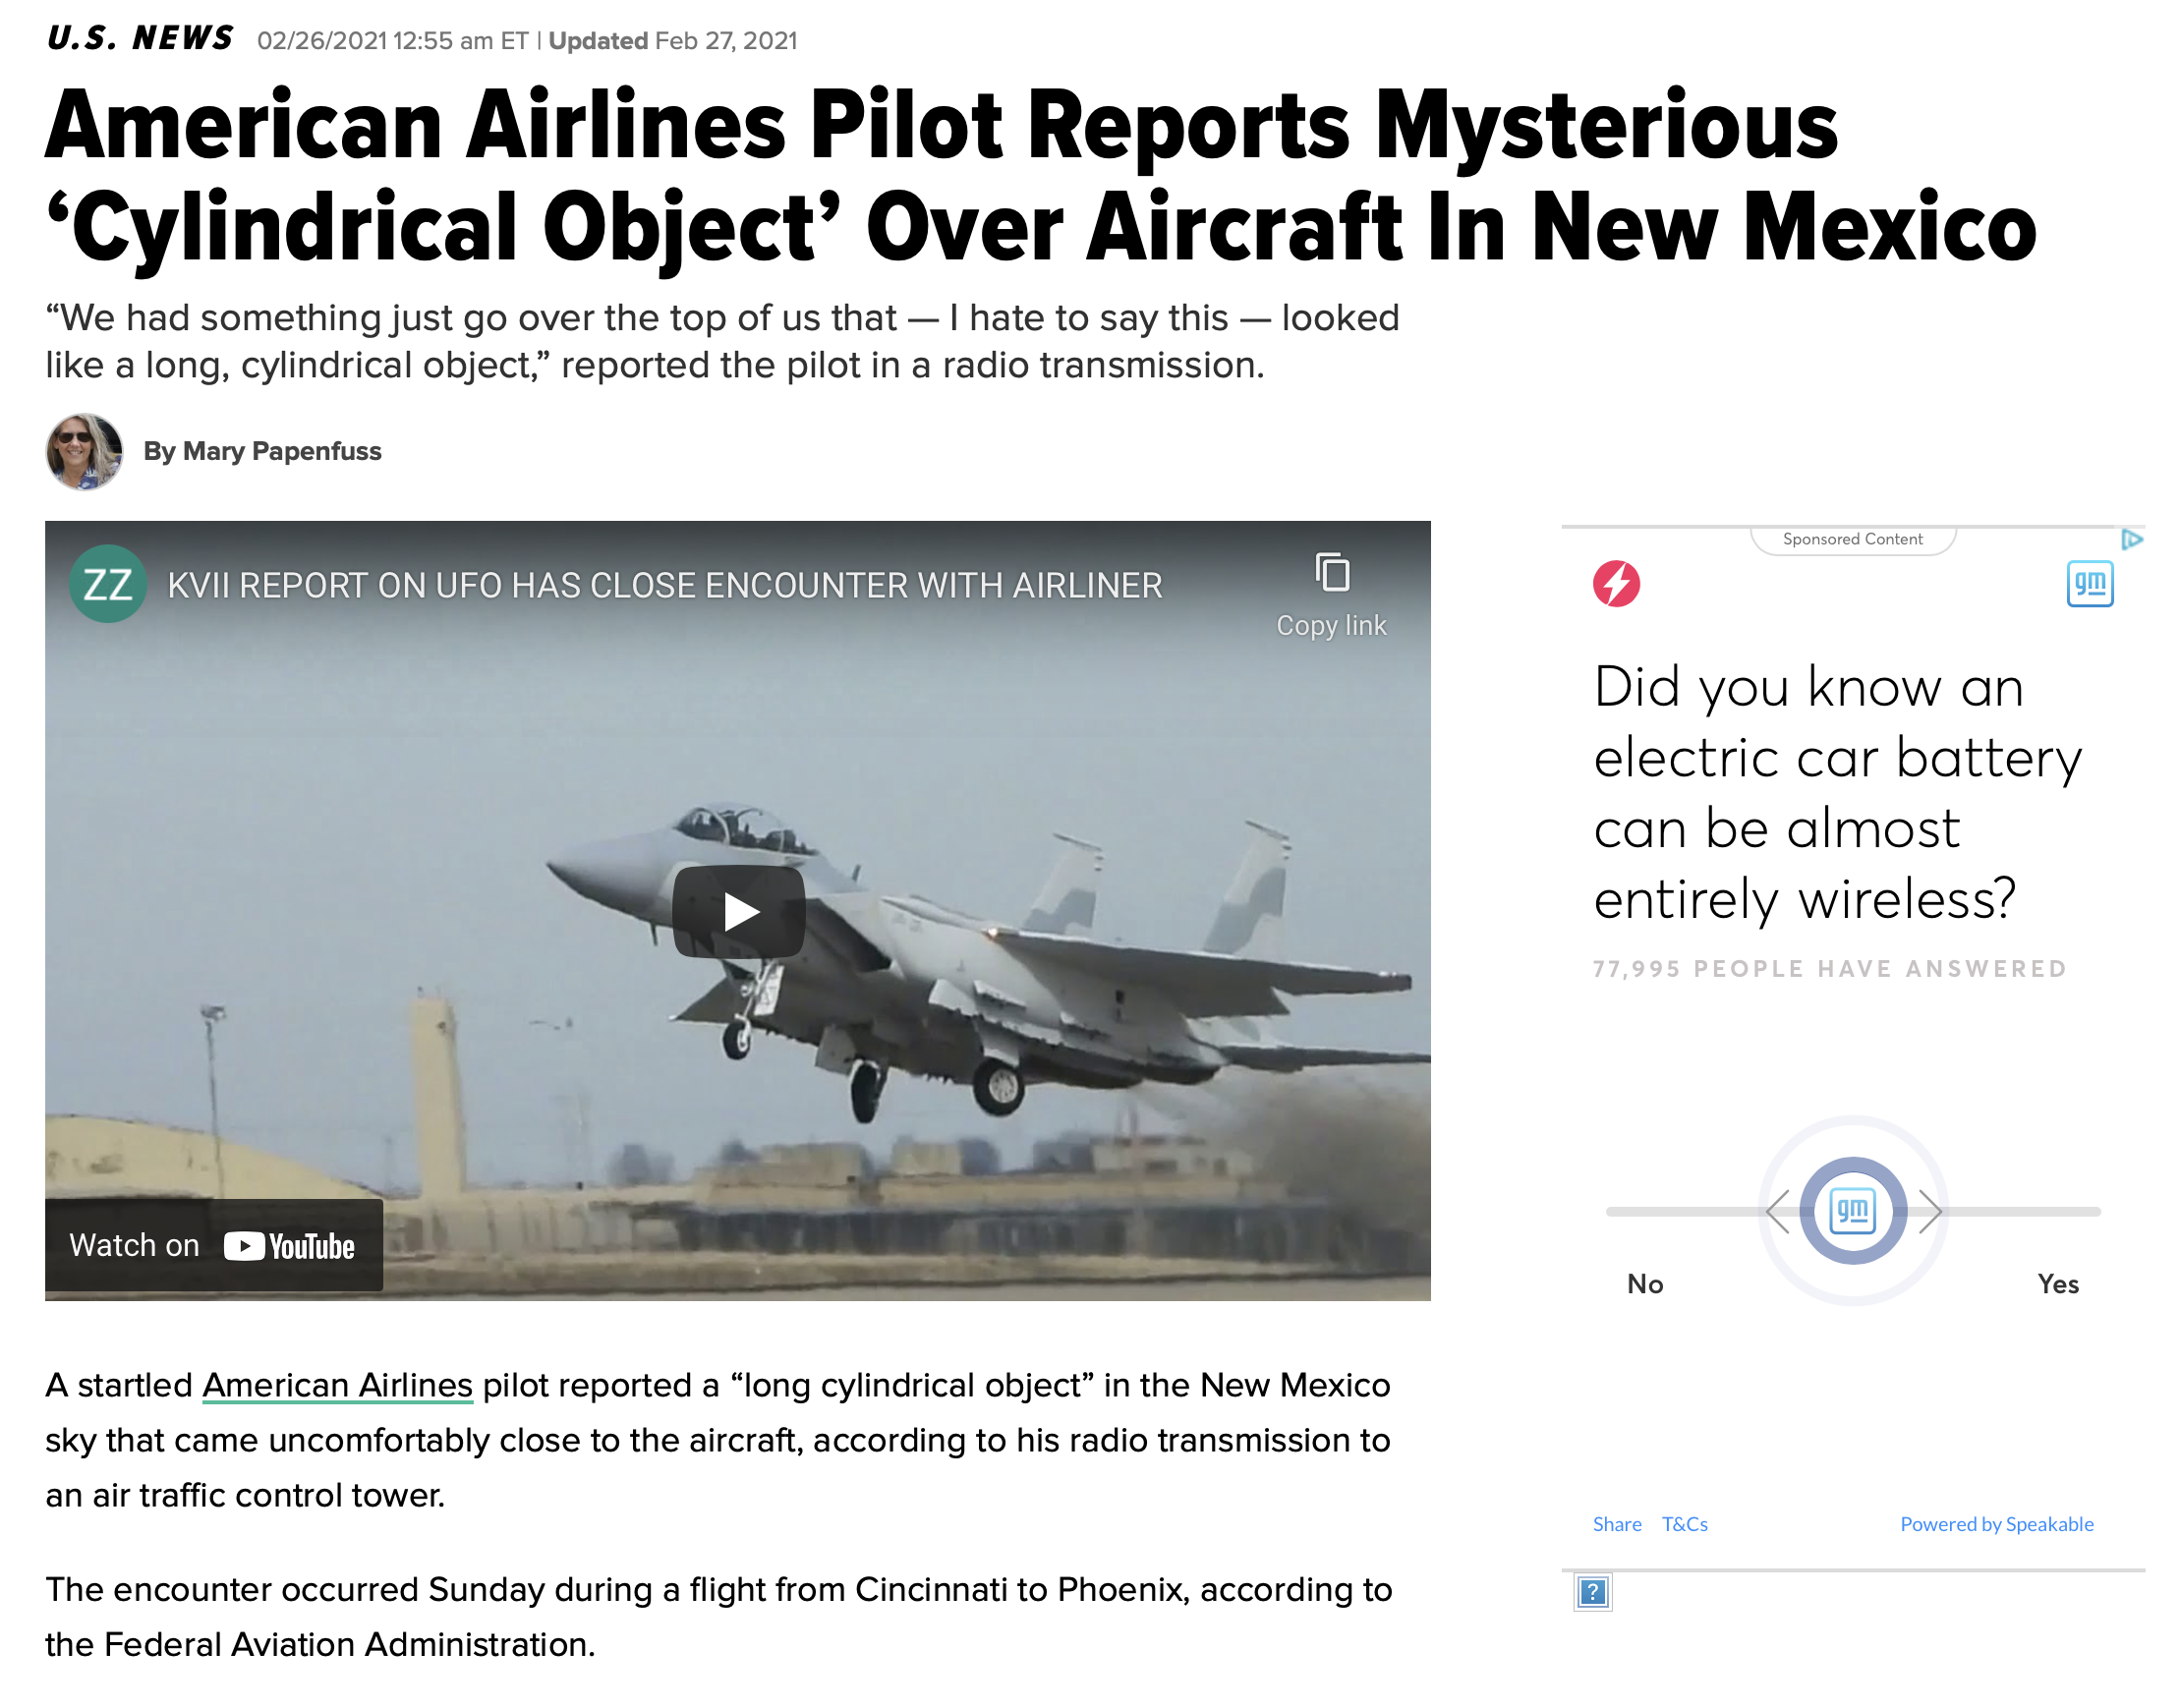 American Airlines Pilot Reports Mysterious 'Cylindrical Object' Over Aircraft In New Mexico